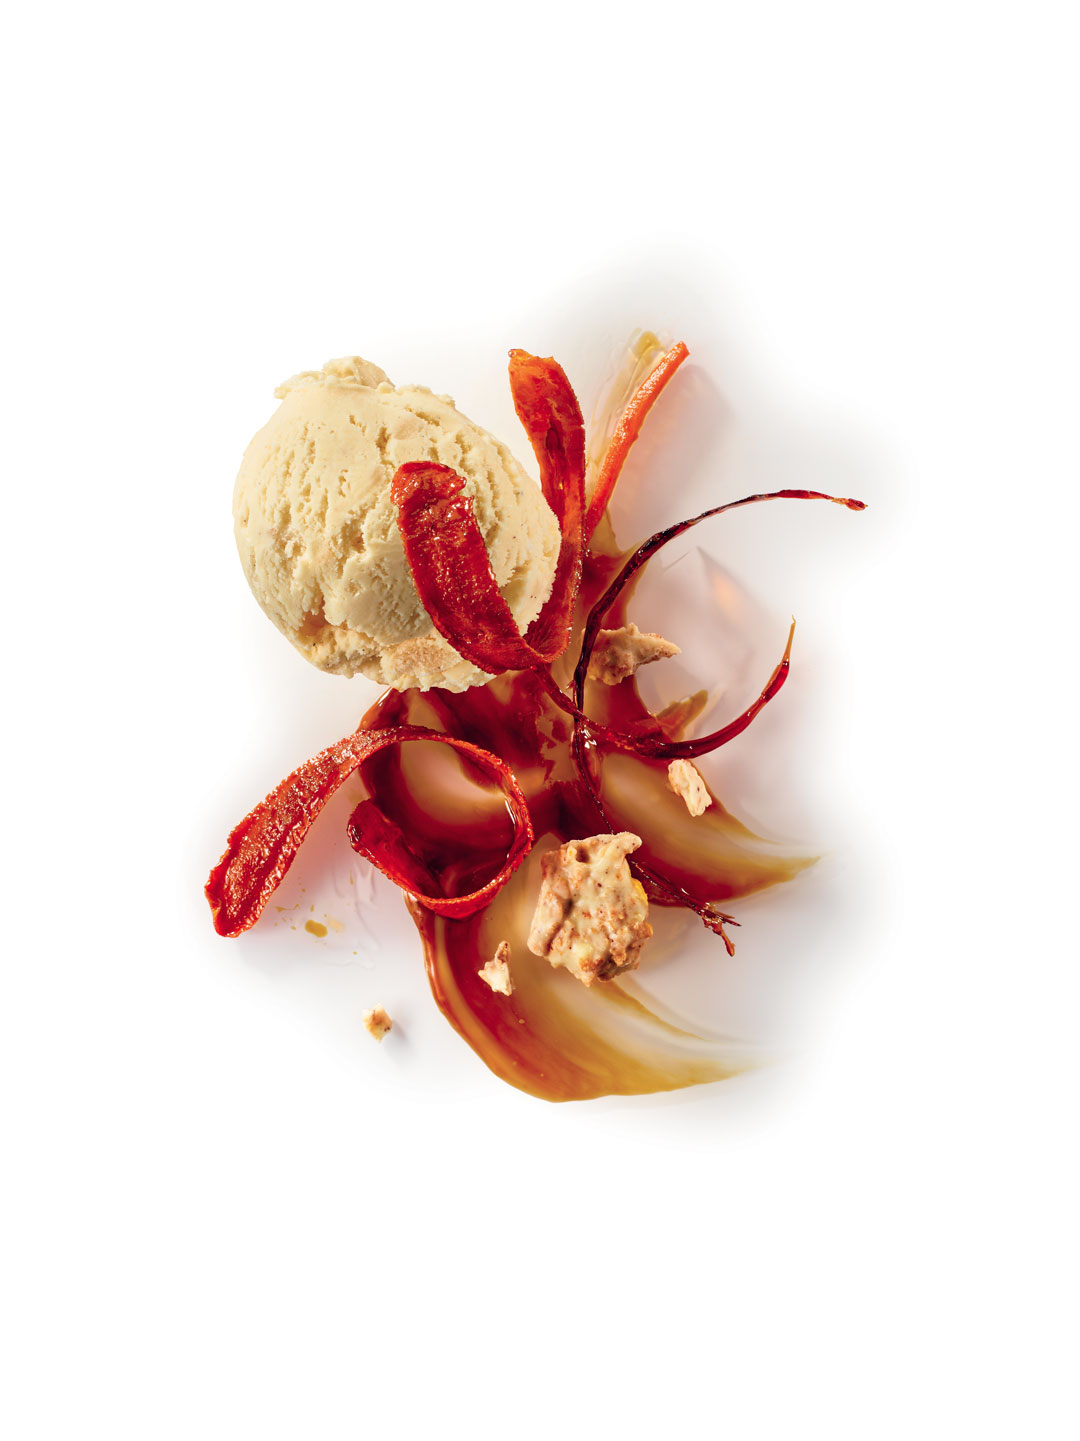 RICE PUDDING ICE CREAM BY PHILIPPE URRACA, CARAMELISED CARROT PEELING, SALTED CARAMEL SAUCE AND WHITE CHOCOLATE ROCHER